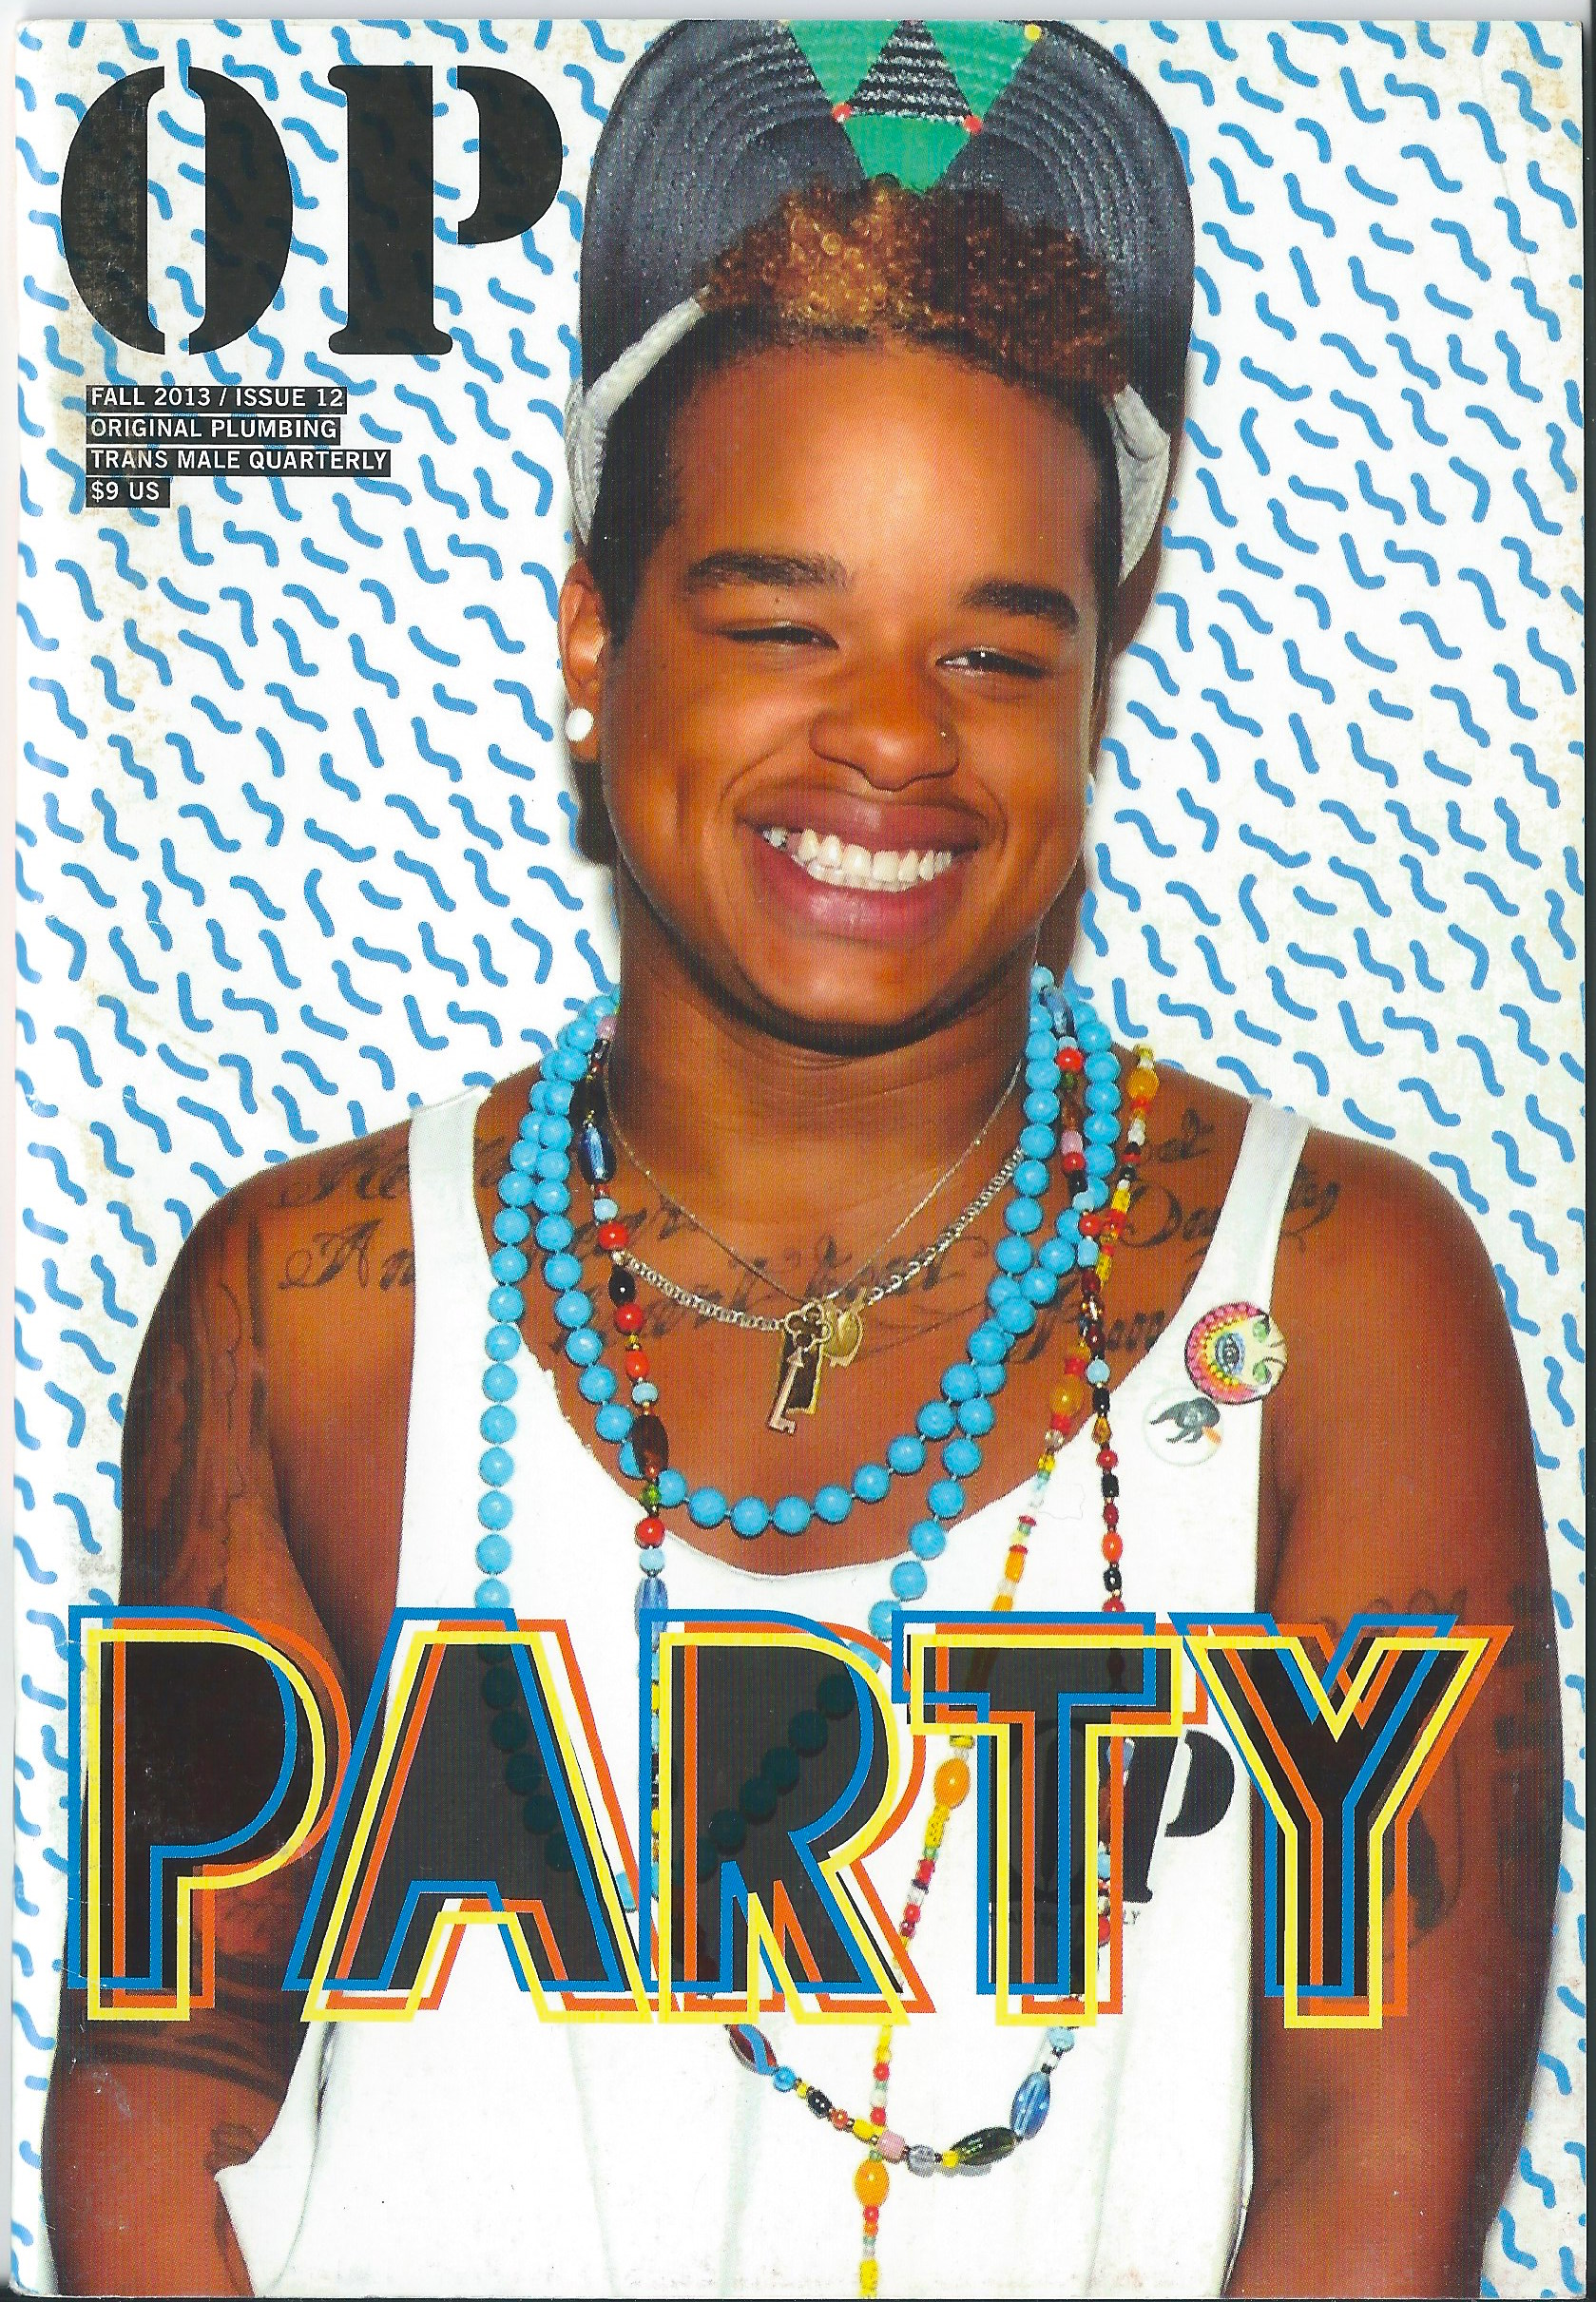 OP #12, Photographed by Amos Mac